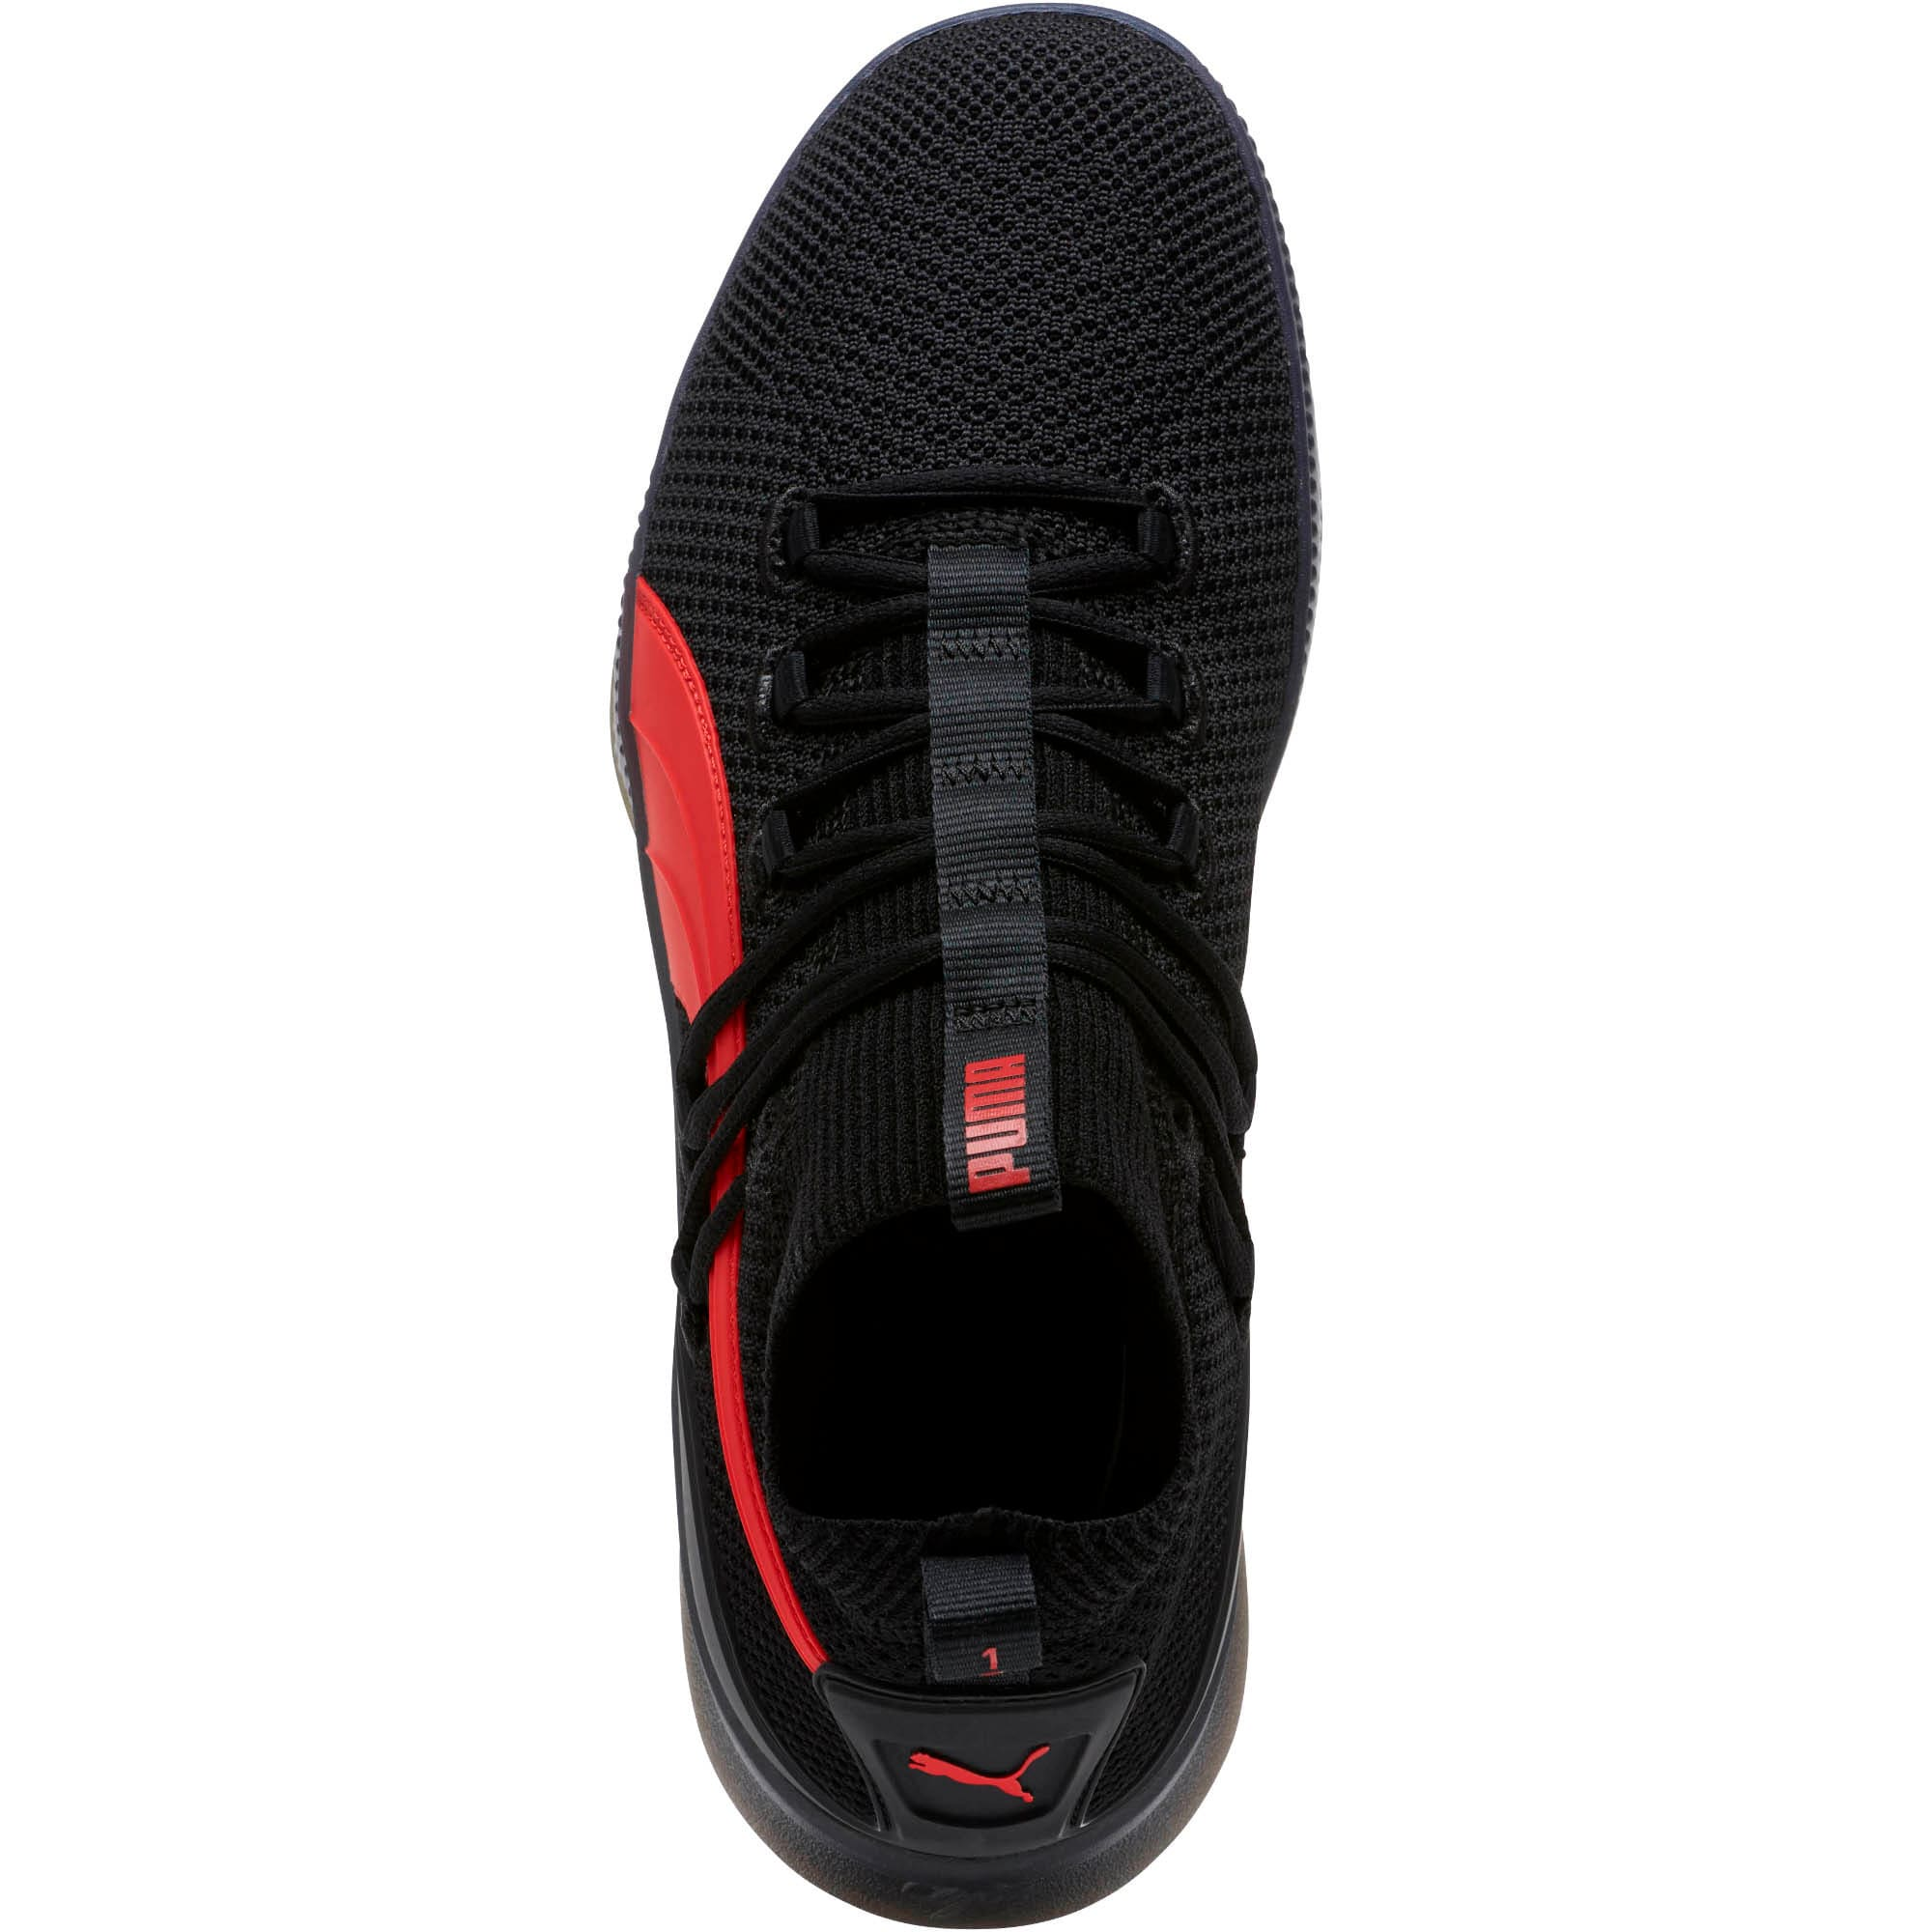 Thumbnail 5 of Clyde Court Core Basketball Shoes, Puma Black-High Risk Red, medium